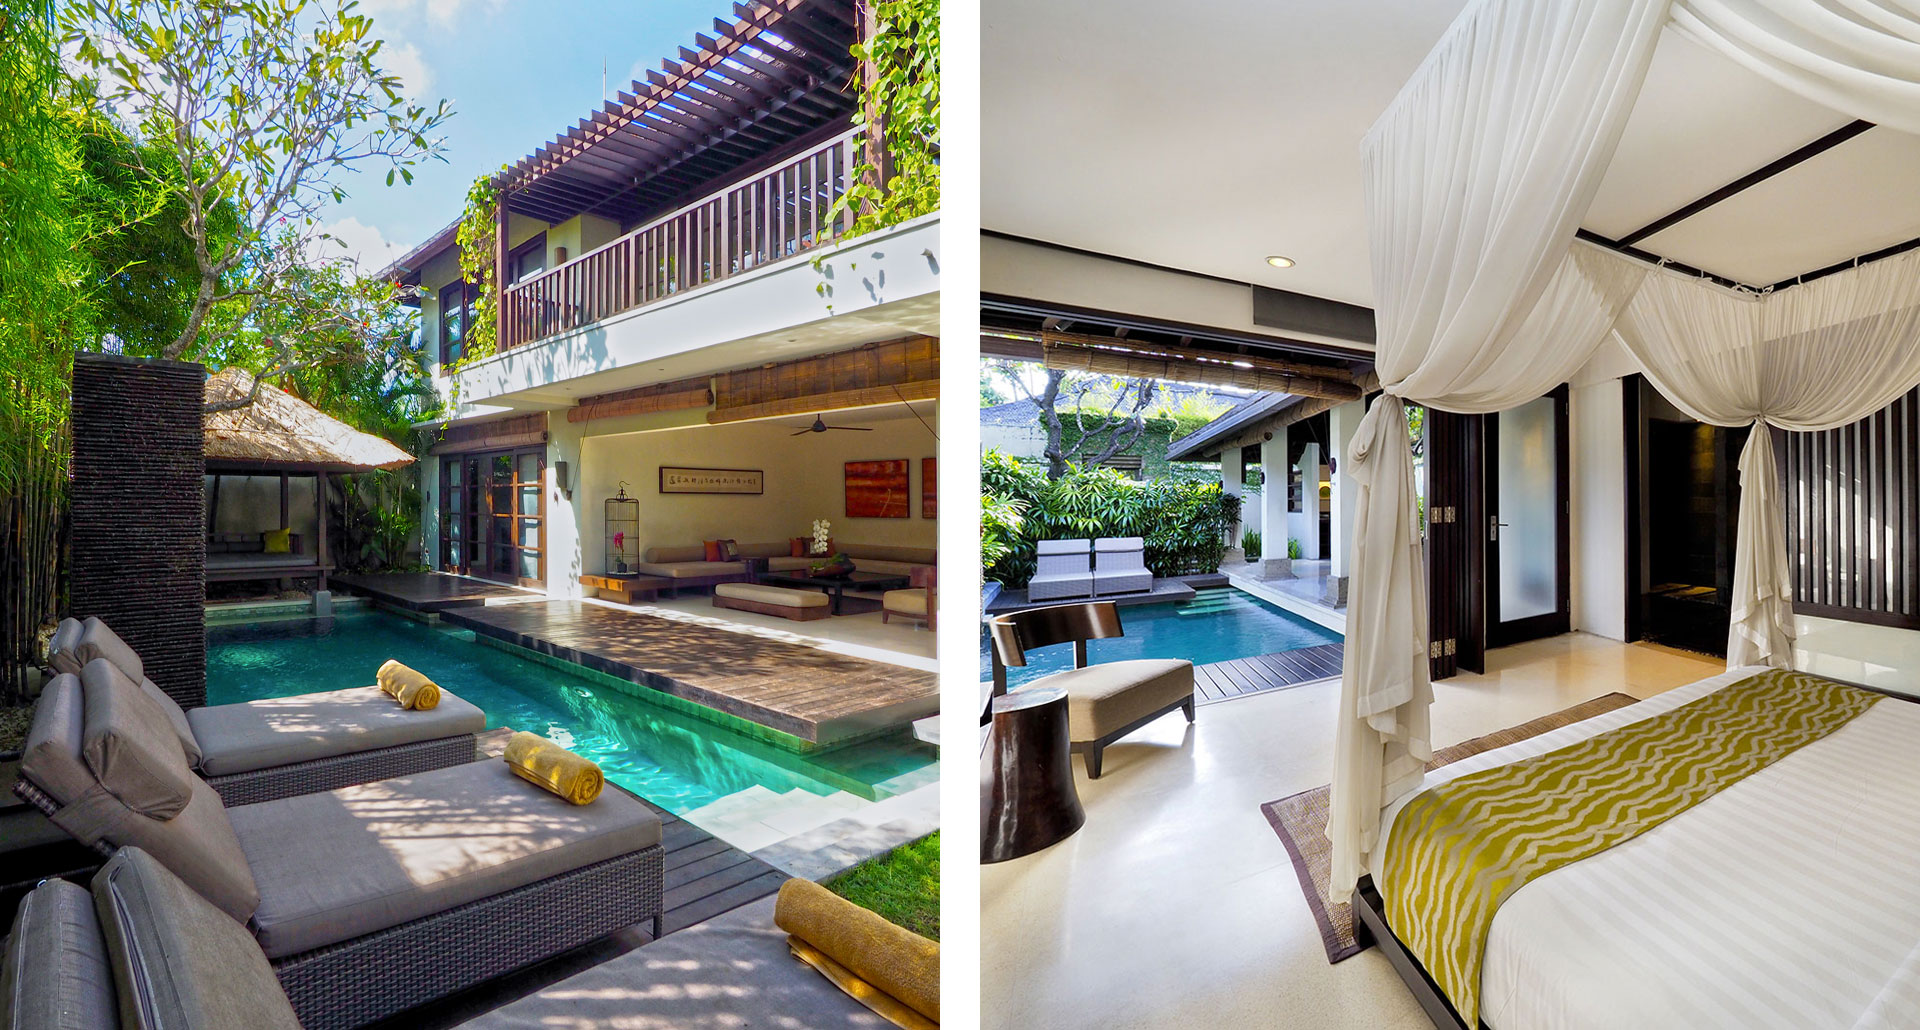 The Amala - boutique hotel in Seminyak